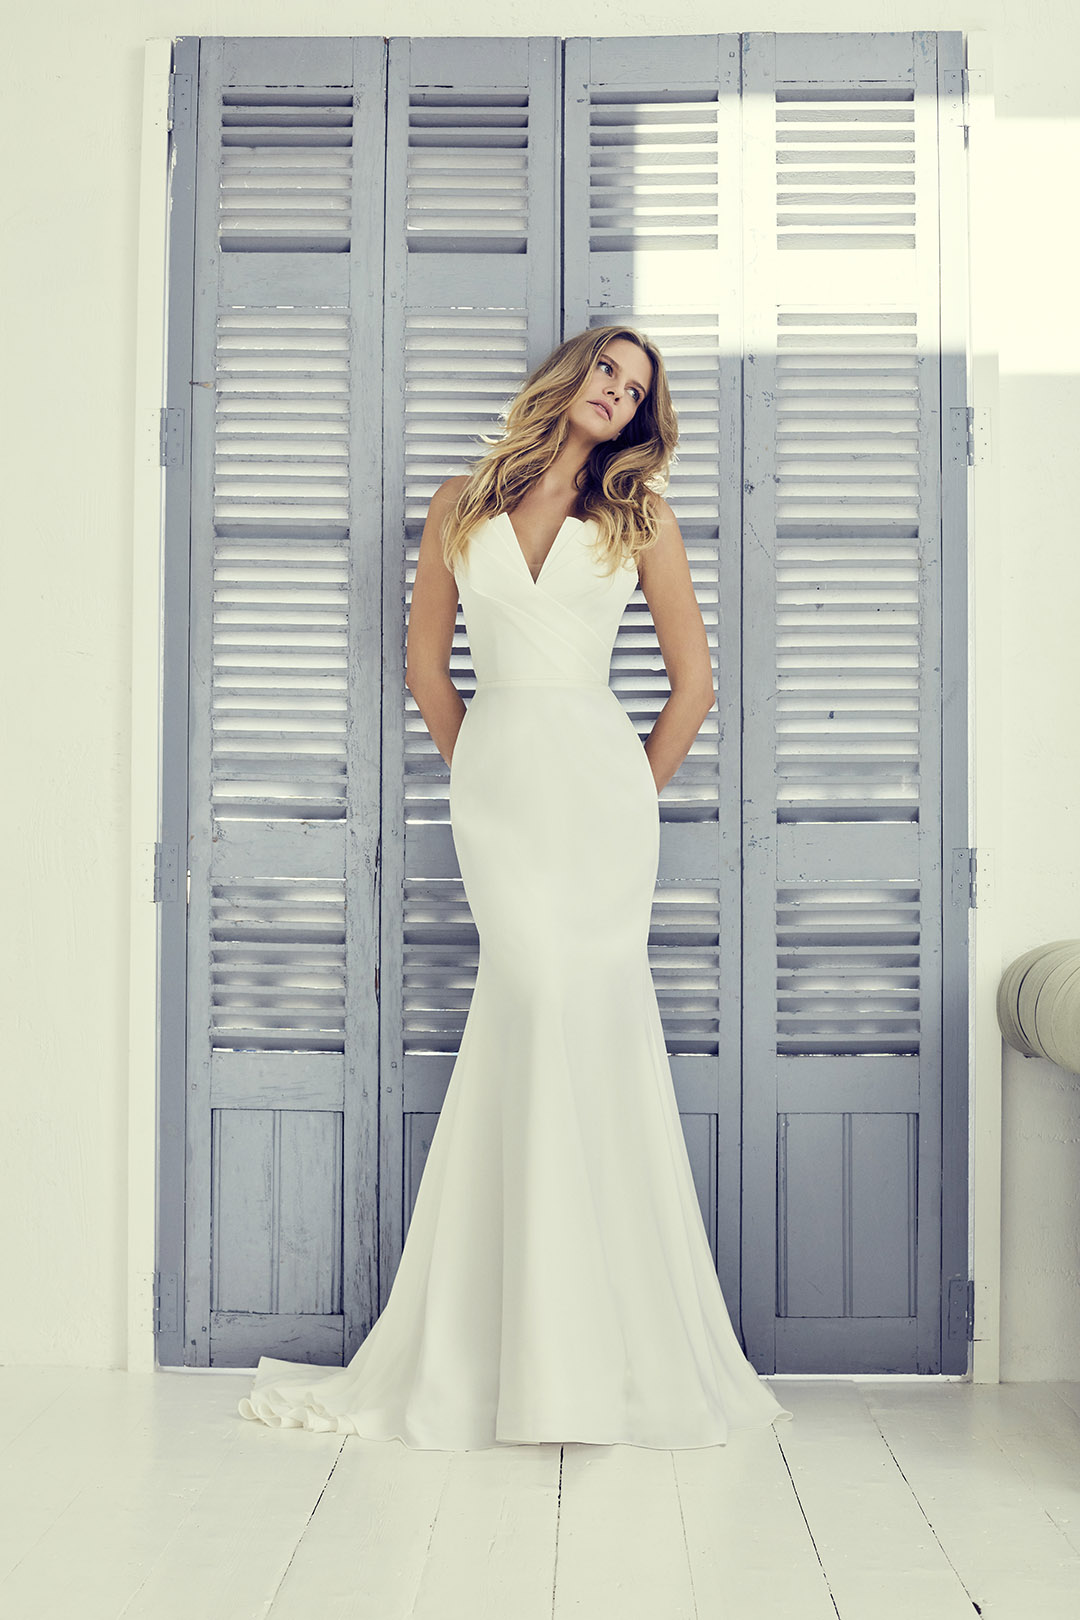 carmella1-wedding-dresses-uk-suzanne-neville-collection-hd-2019